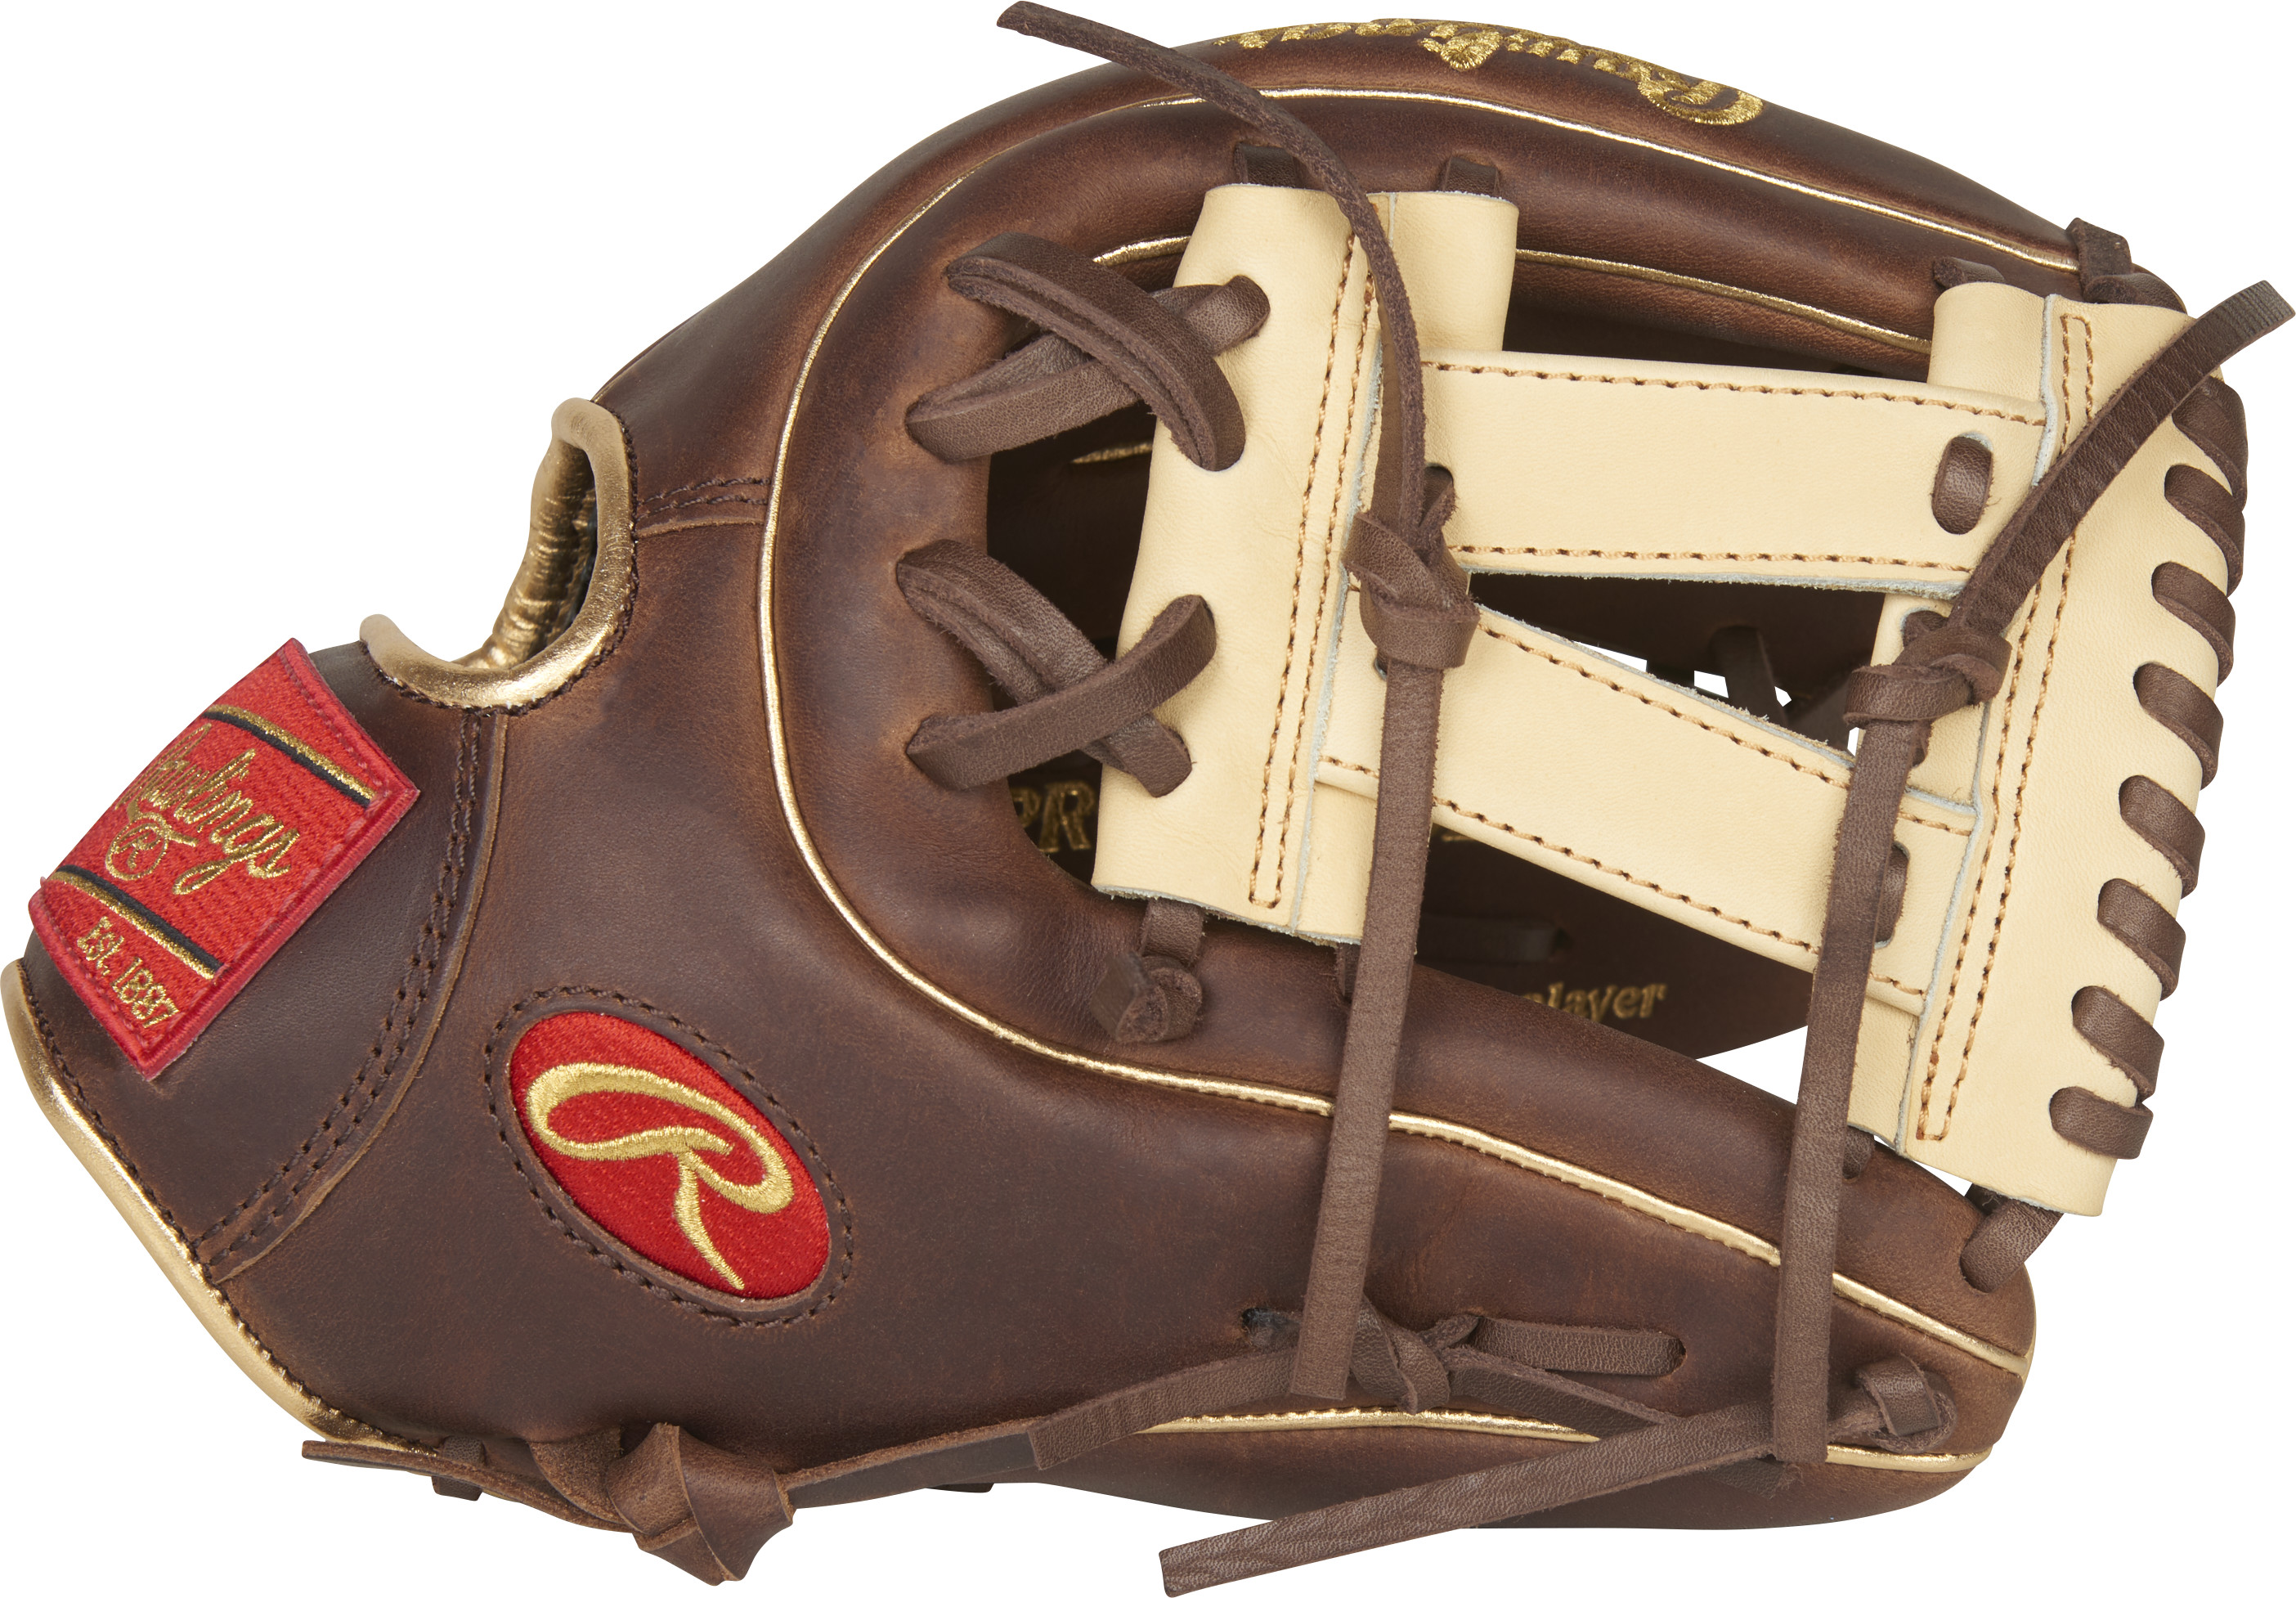 http://www.bestbatdeals.com/images/gloves/rawlings/PRO315-7SLC-3.jpg